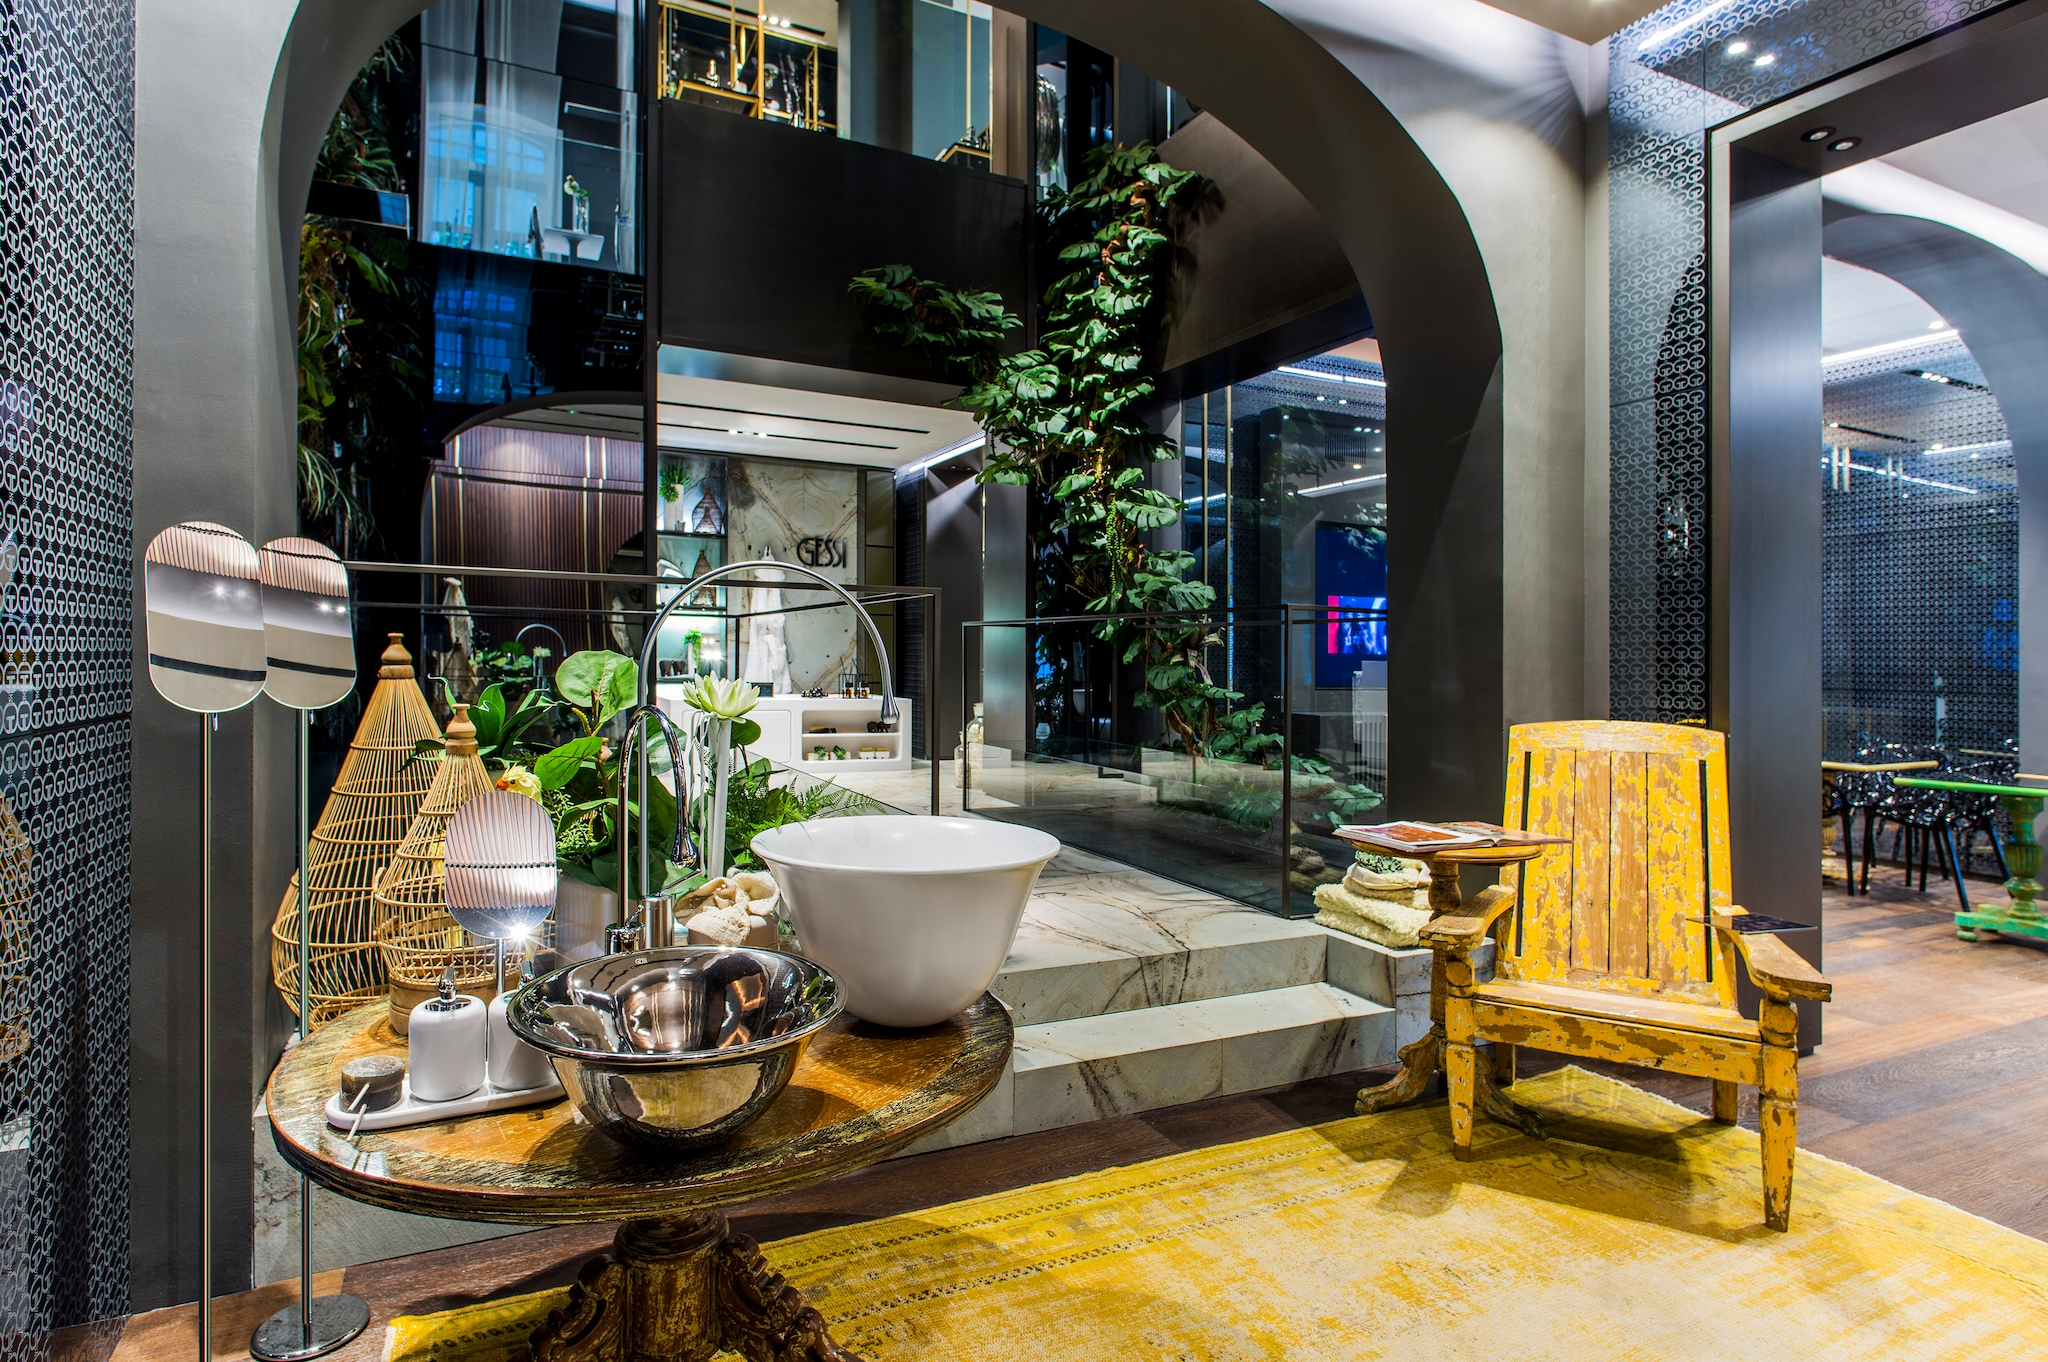 Casa gessi a singapore interni magazine for Piani di casa in stile west indian